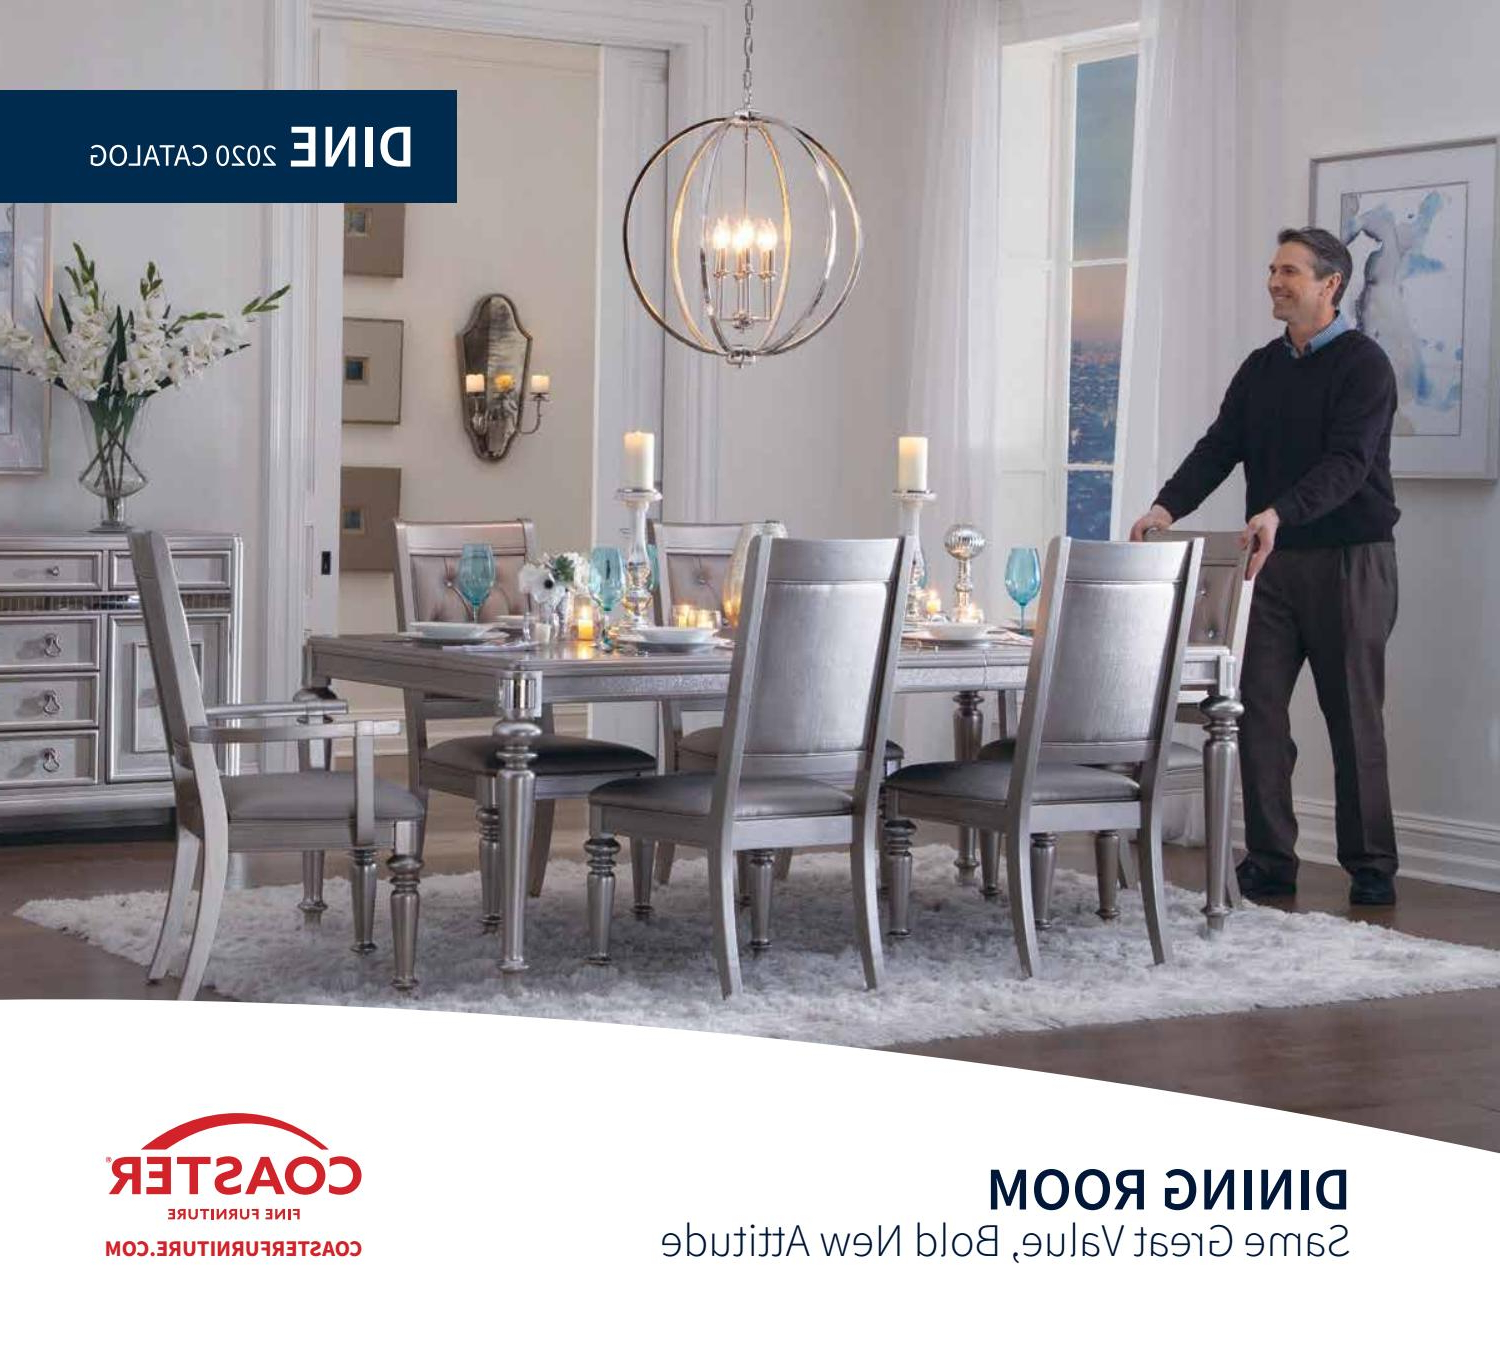 Trendy Transitional 4 Seating Drop Leaf Casual Dining Tables For 2020 Coaster Catalog Dinecoaster Company Of America – Issuu (View 17 of 25)